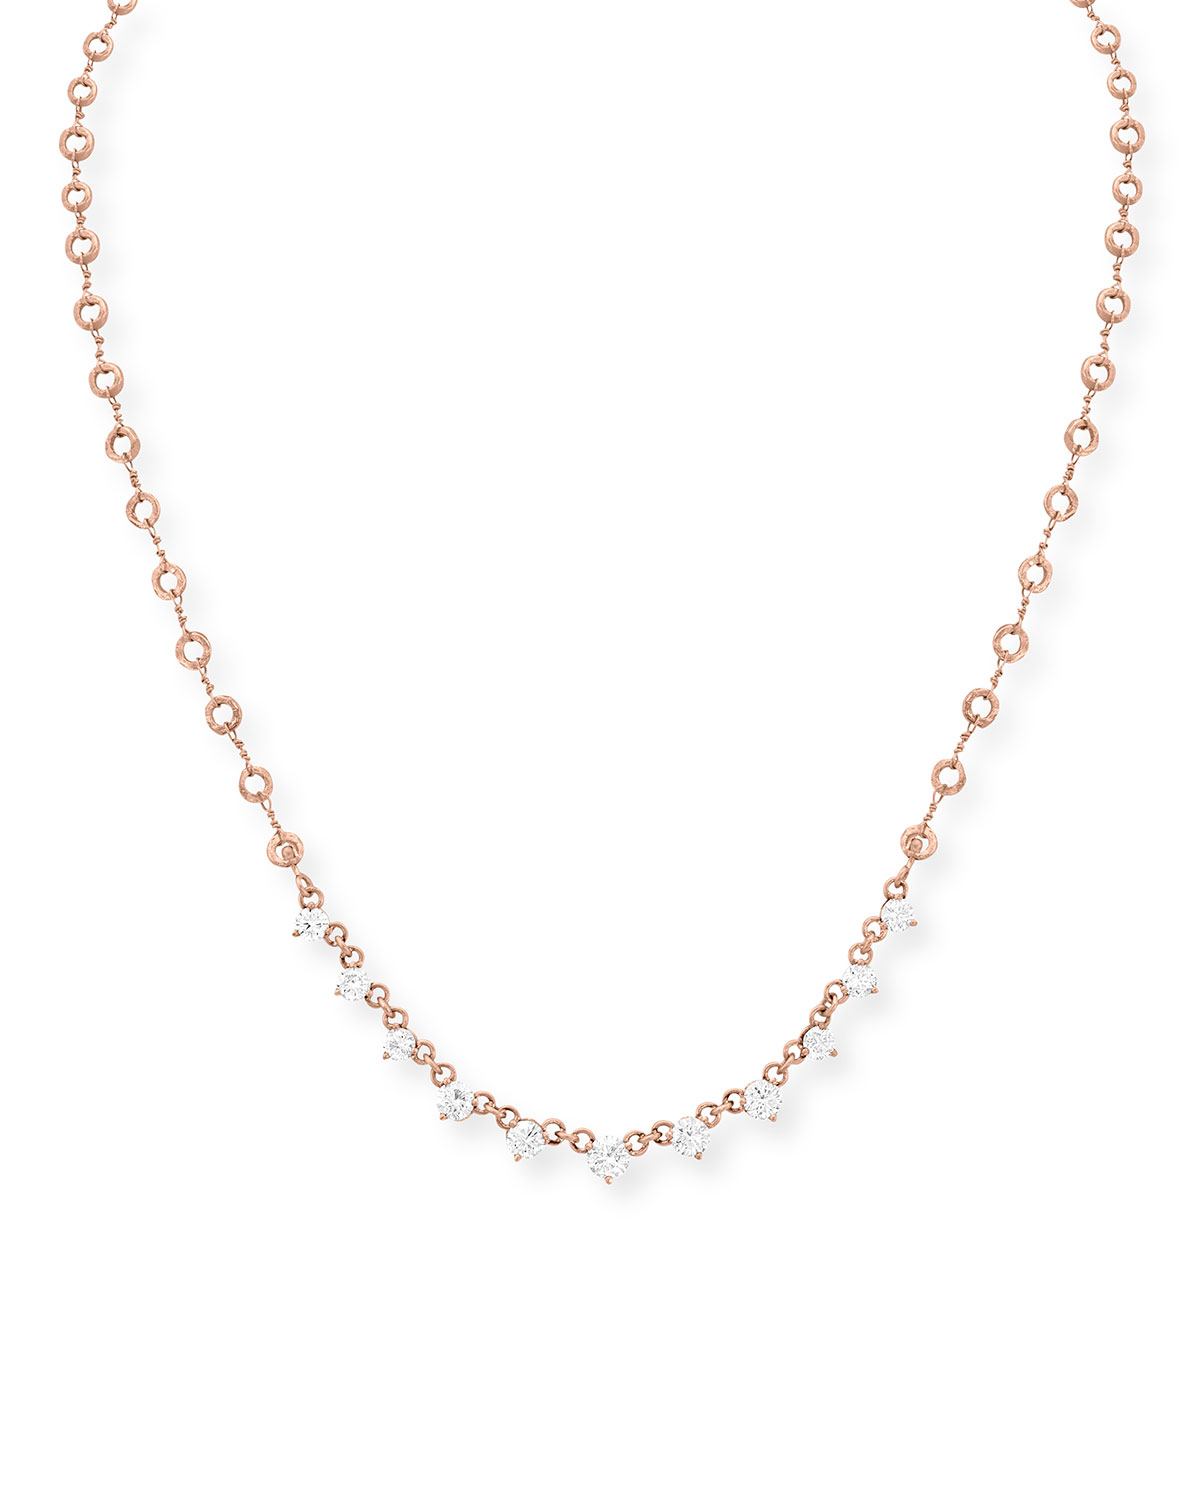 18k Rose Gold Carved Link Necklace with Diamonds